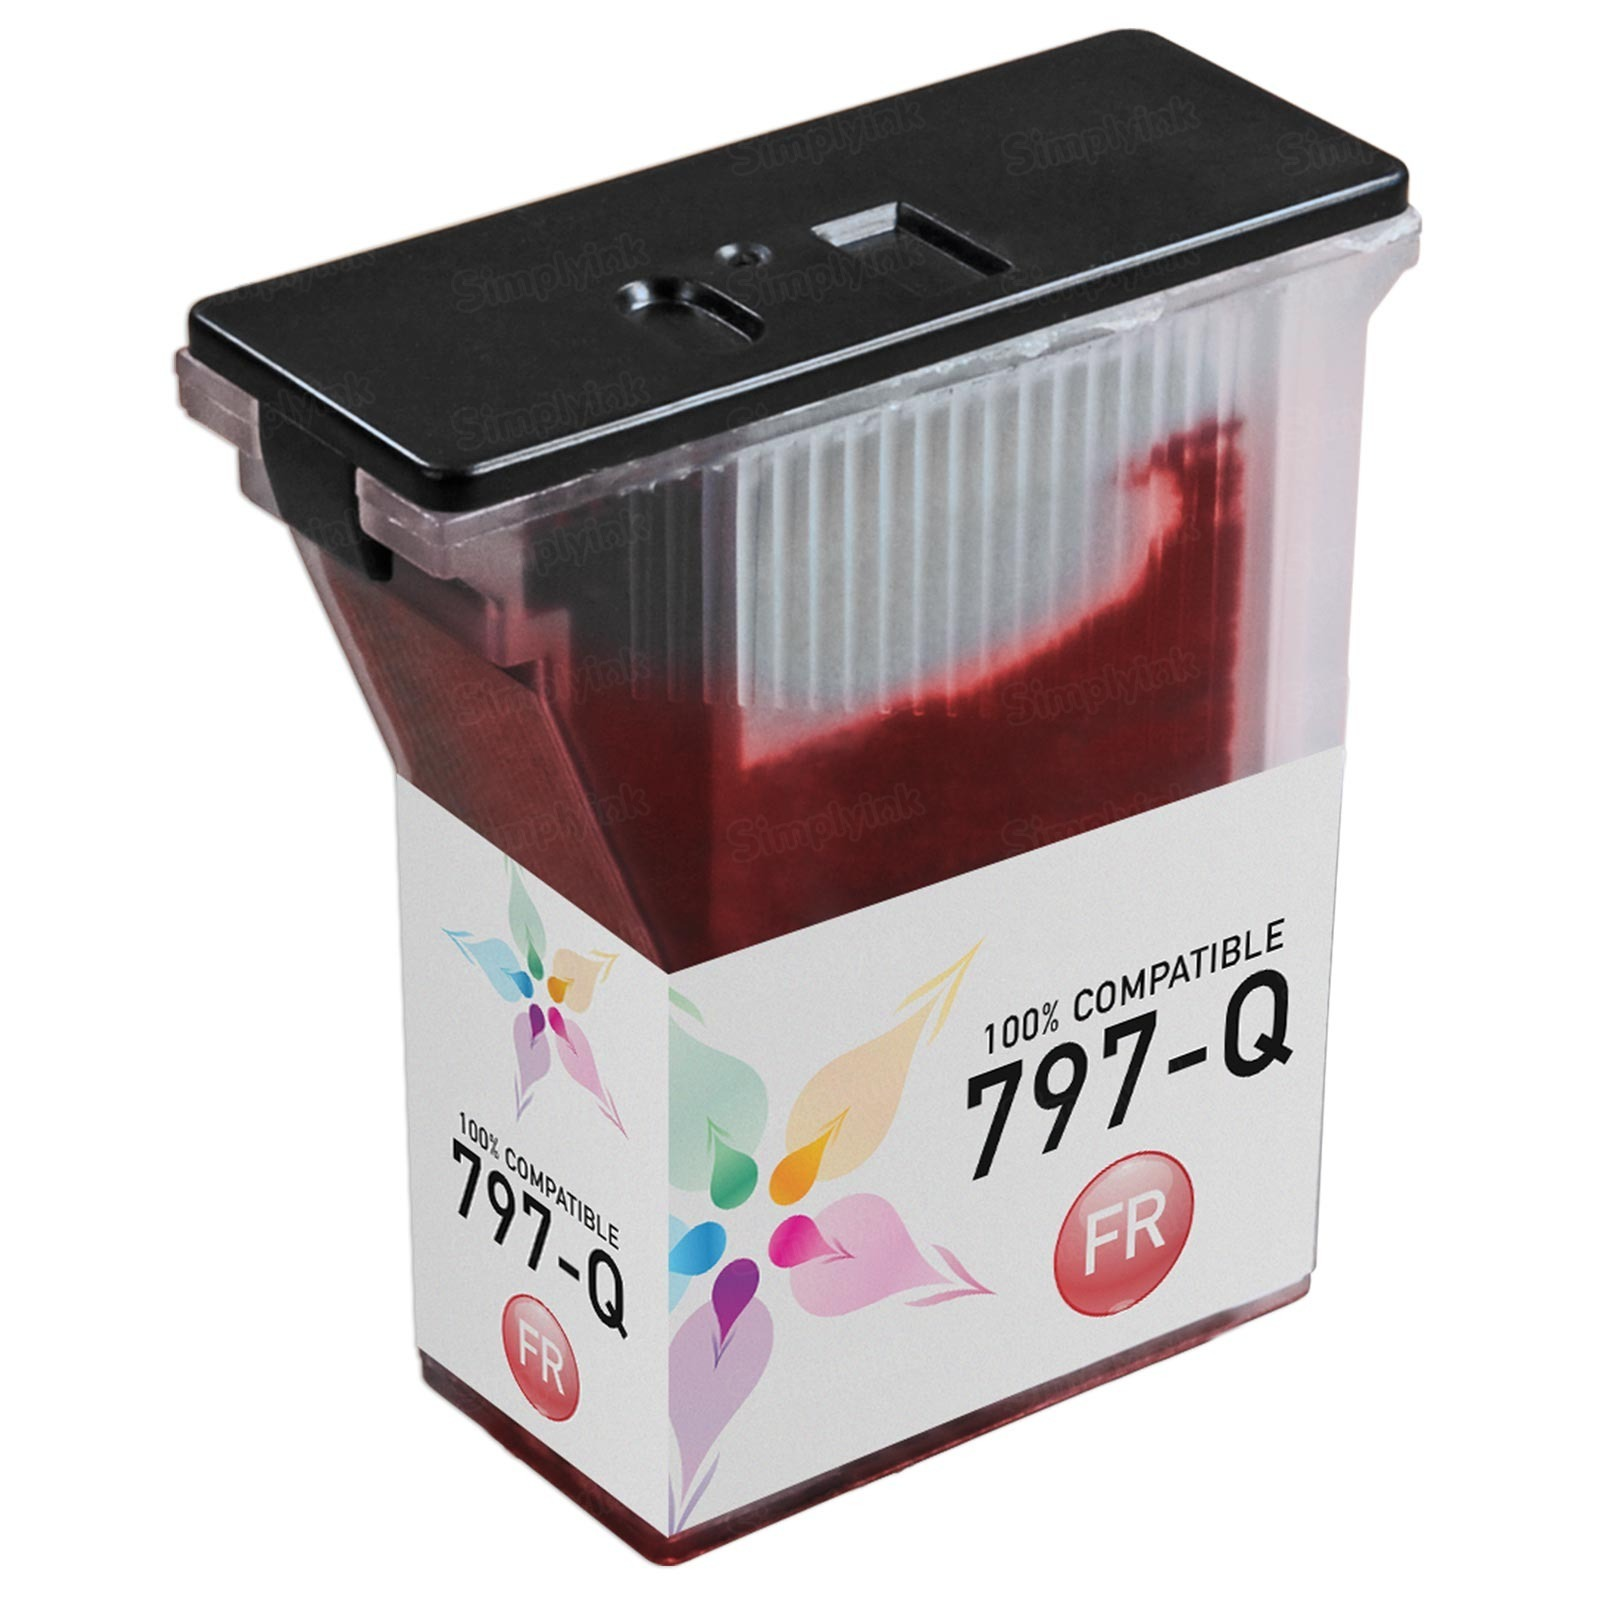 Compatible Replacement for Pitney Bowes 797-Q Fluorescent Red Ink for the MailStation 2